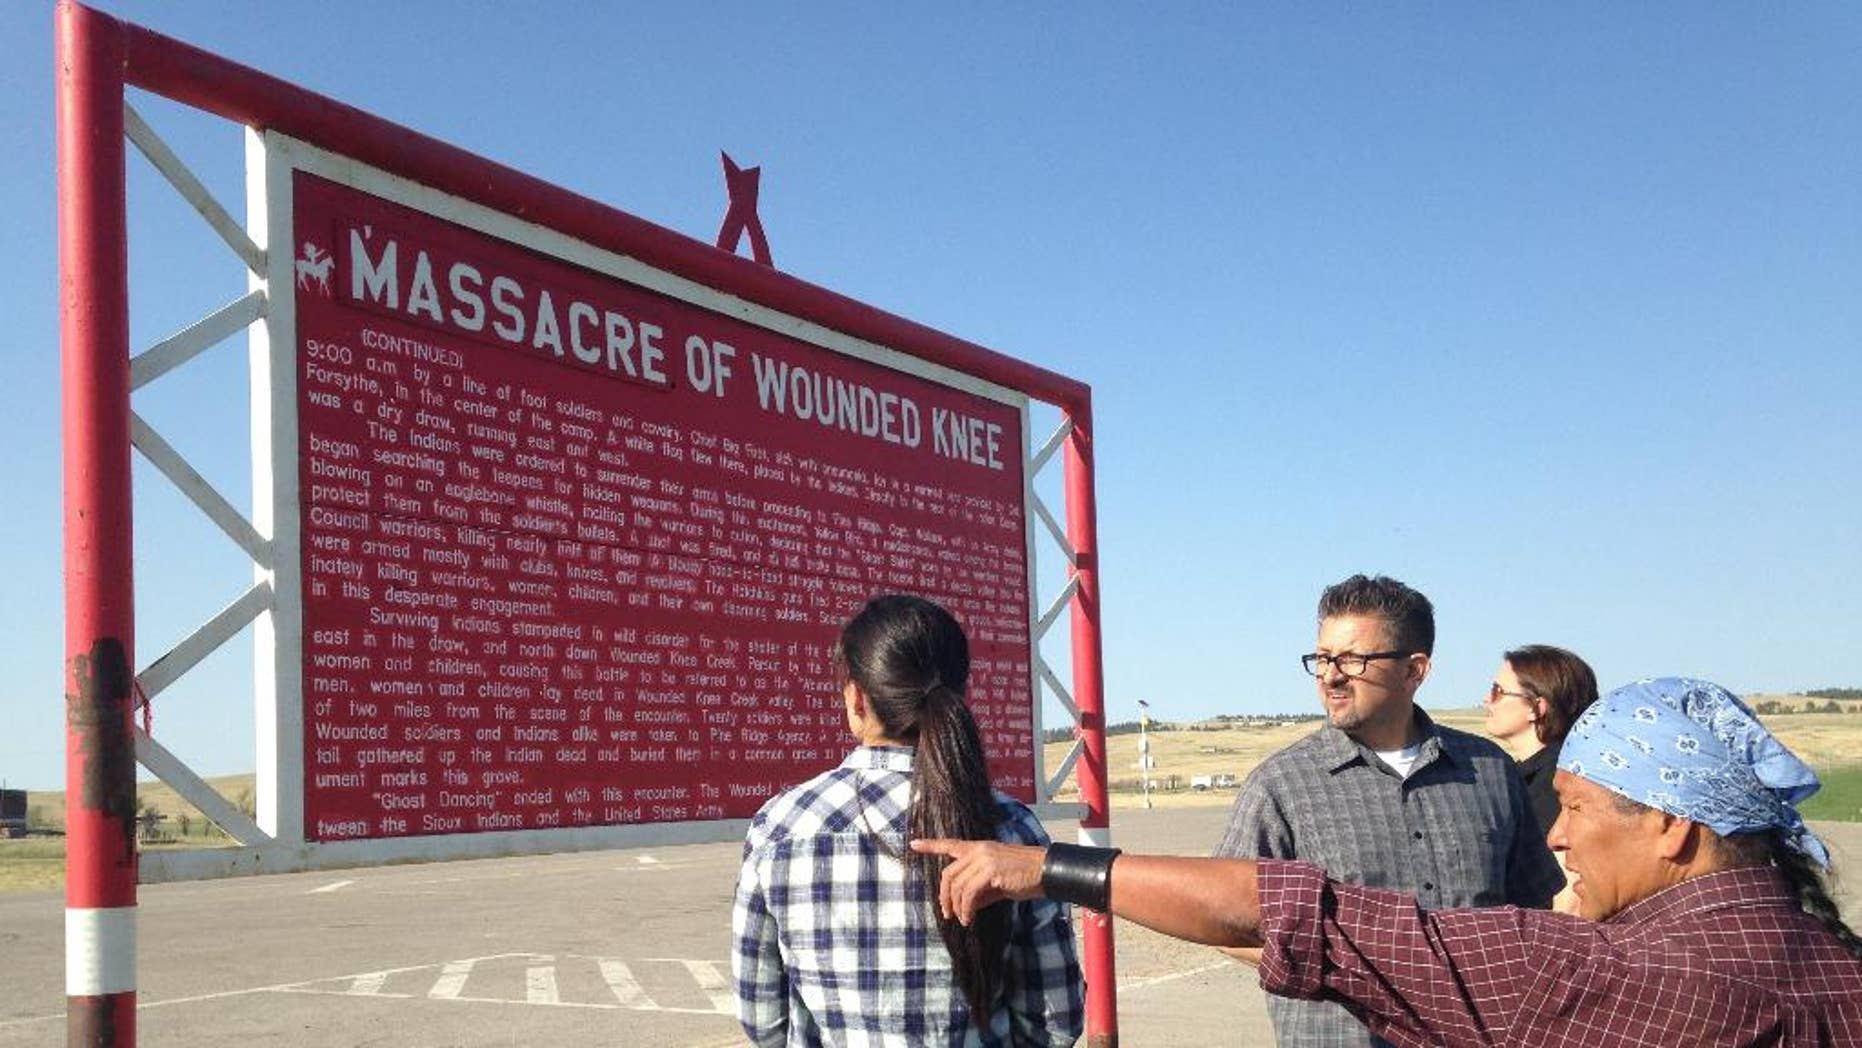 In this May 1, 2015 photo, Native American cartoonist Ricardo Cate', far right, and Chicano cartoonist Lalo Alcaraz, third right, visit Wounded Knee Memorial at Wounded Knee, S.D., on the Pine Ridge Indian Reservation. The nightclub attack in Orlando was initially described by some news organizations, including The Associated Press, as the deadliest mass shooting in U.S. history. In truth, America has seen even bigger massacres, some involving hundreds of men, women and children, like the one at Wounded Knee in 1890 against the Lakota. (AP Photo/Russell Contreras)